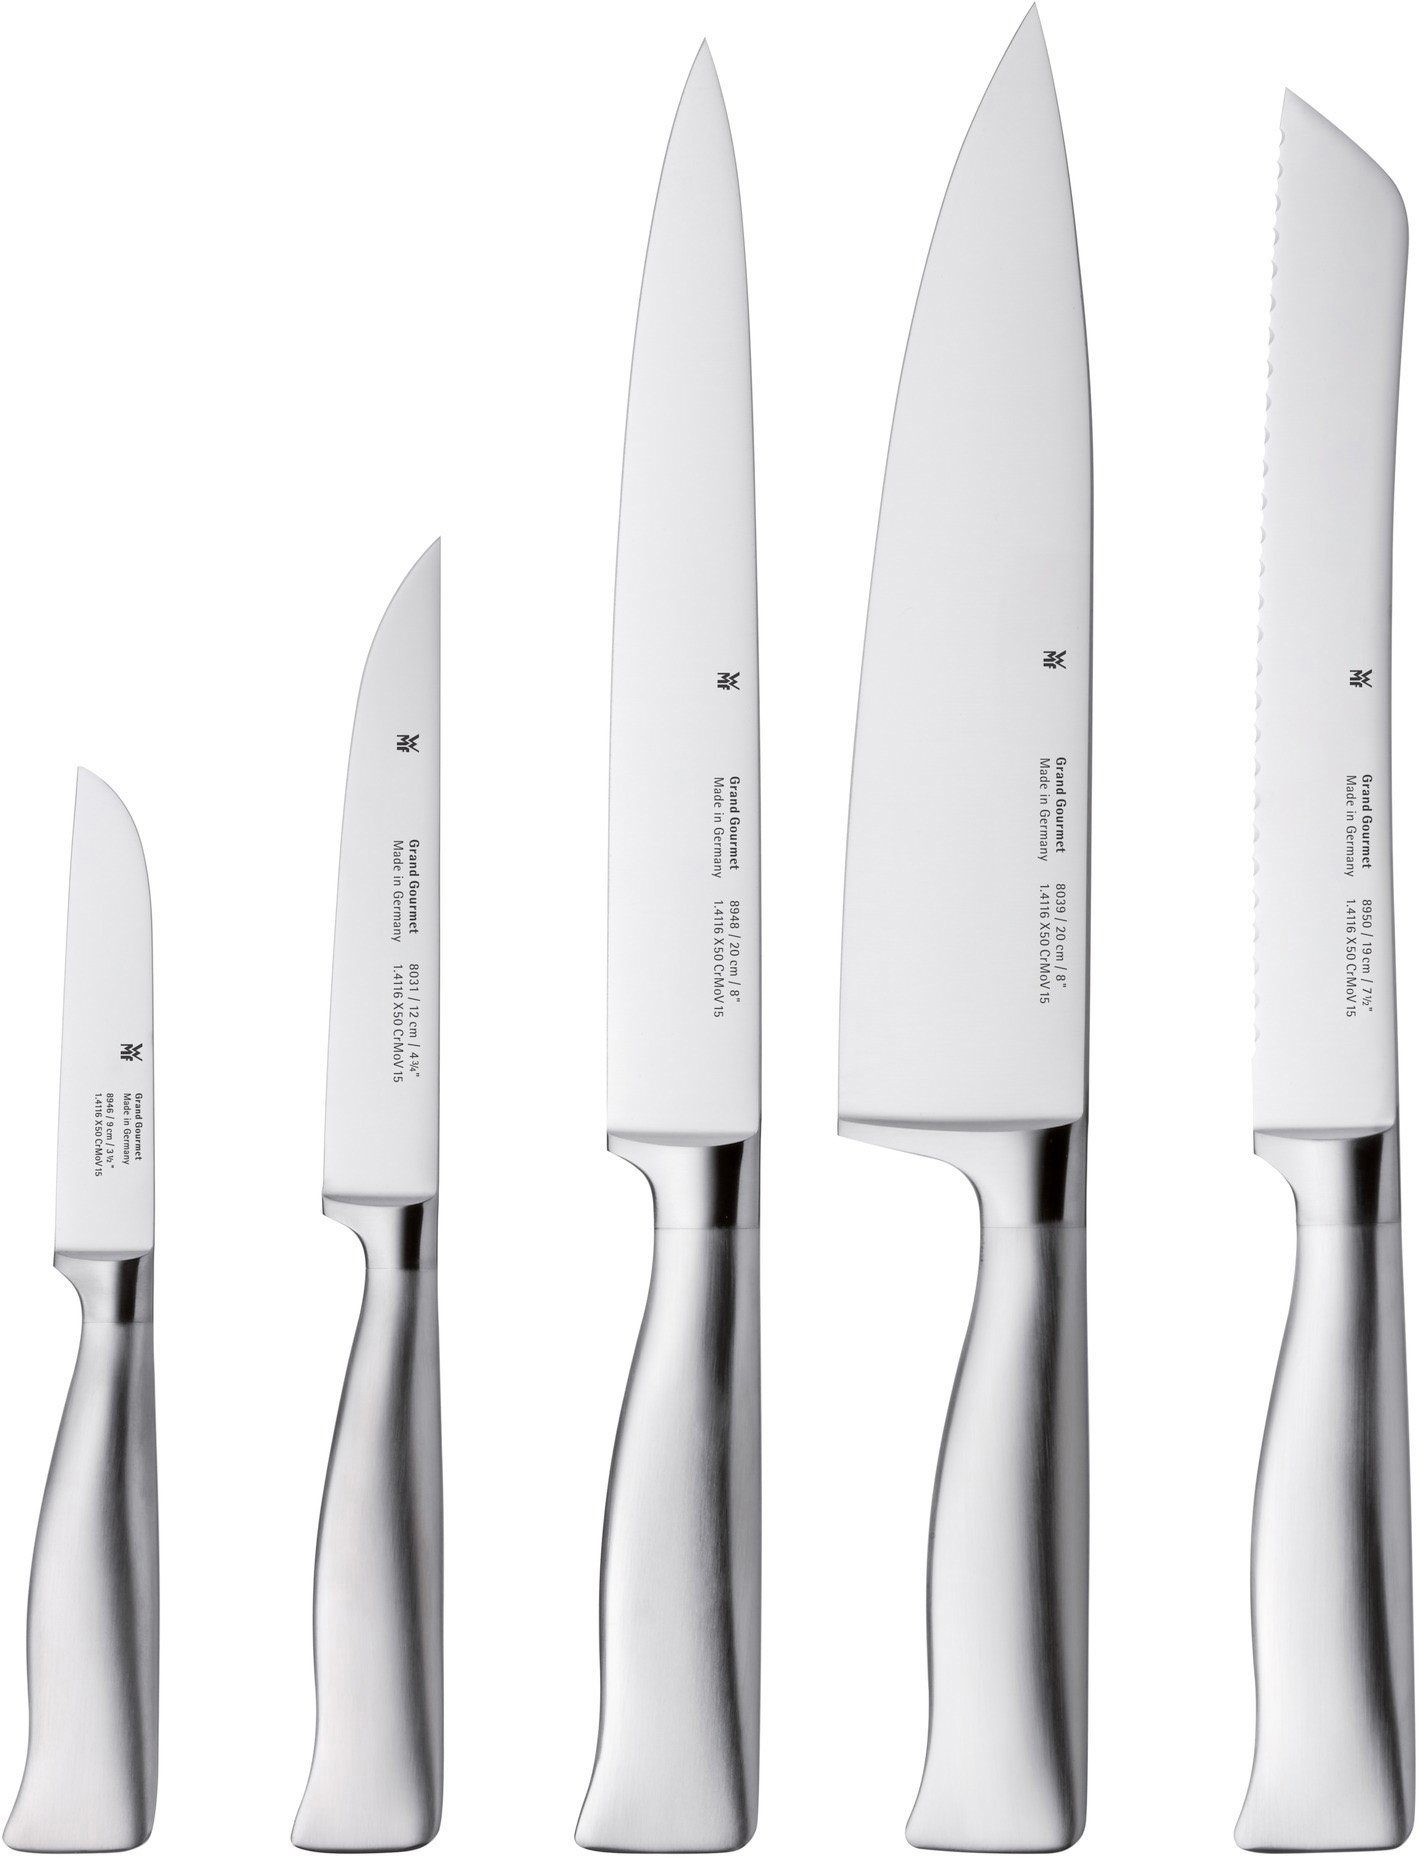 WMF Messer-Set, 5-teilig, »GRAND GOURMET«